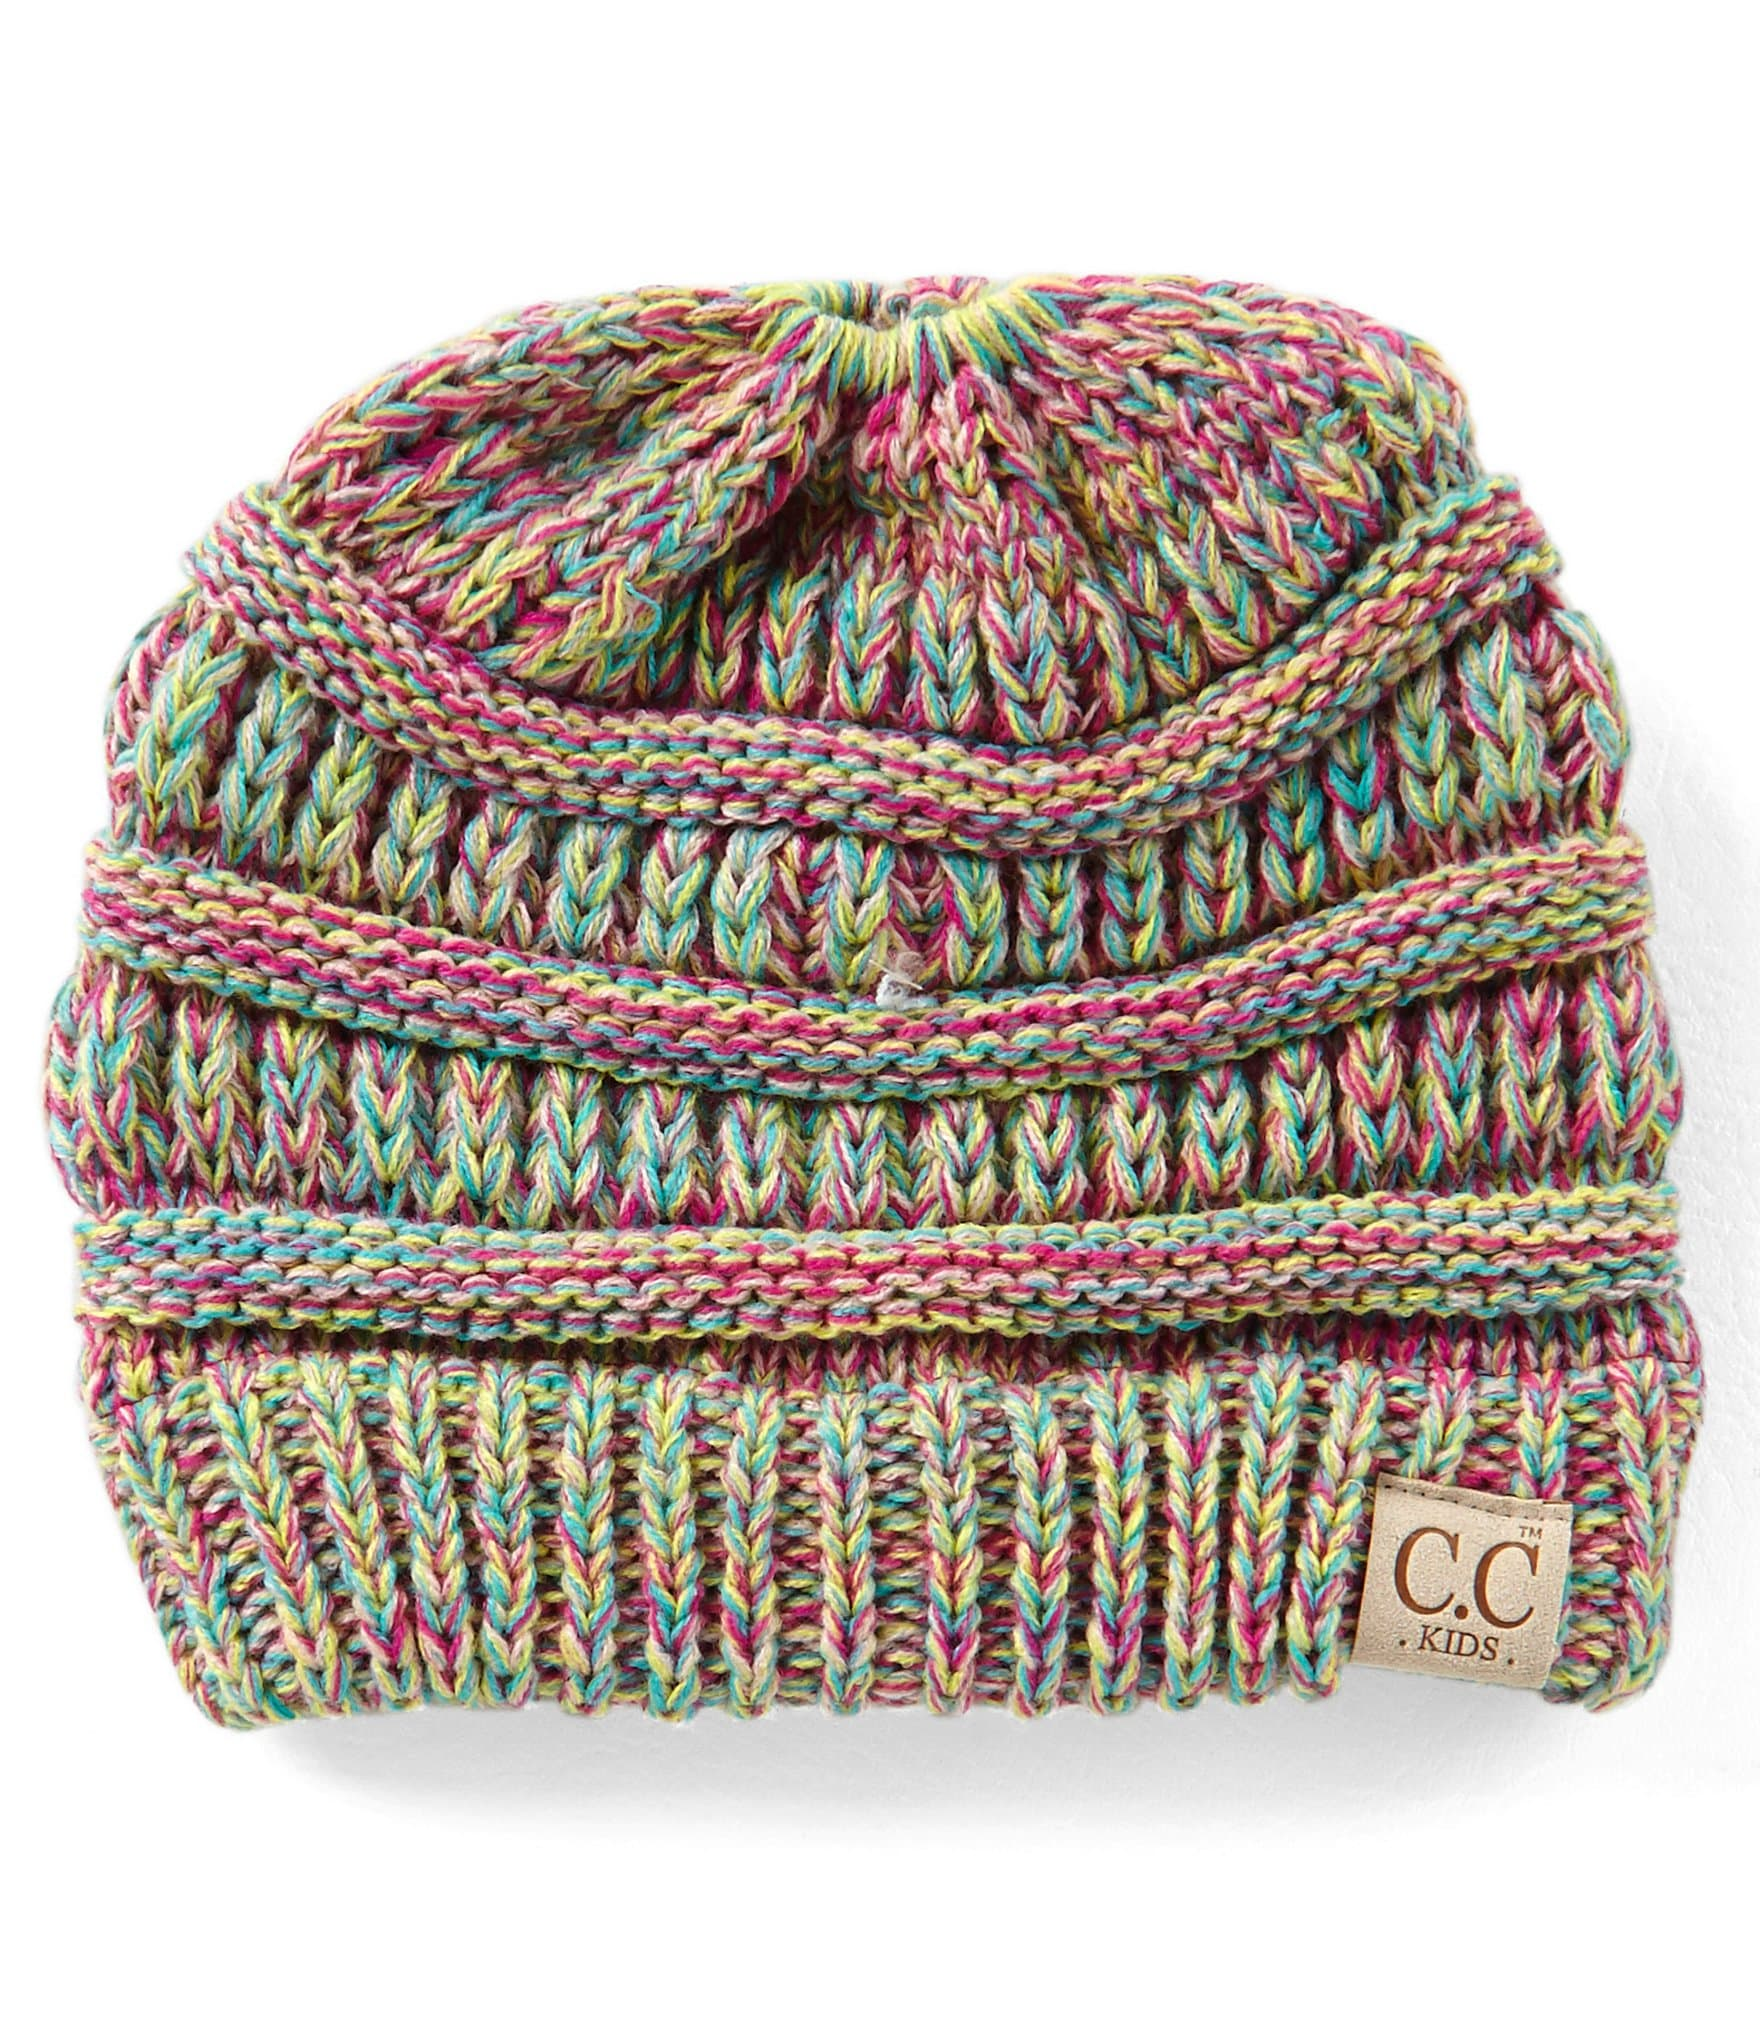 08352d1dd15 real childrens knitted hats wholesale orlando af435 8a160